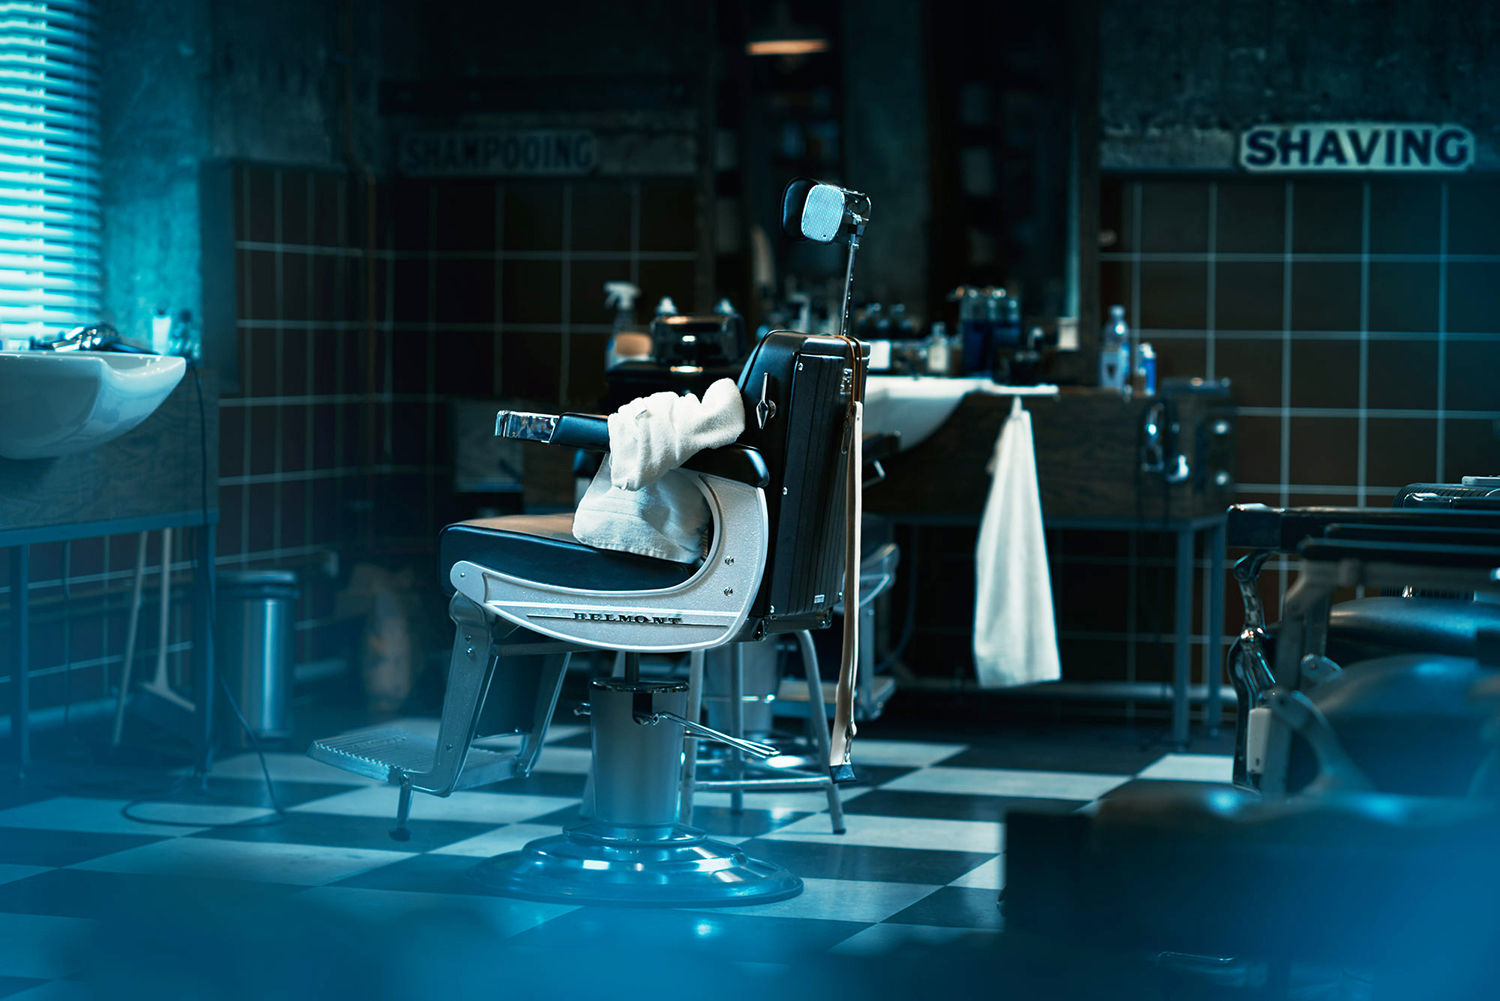 The barber chair, from a cinematic story about the barber. Shot at Pels Pels barbershop Oslo